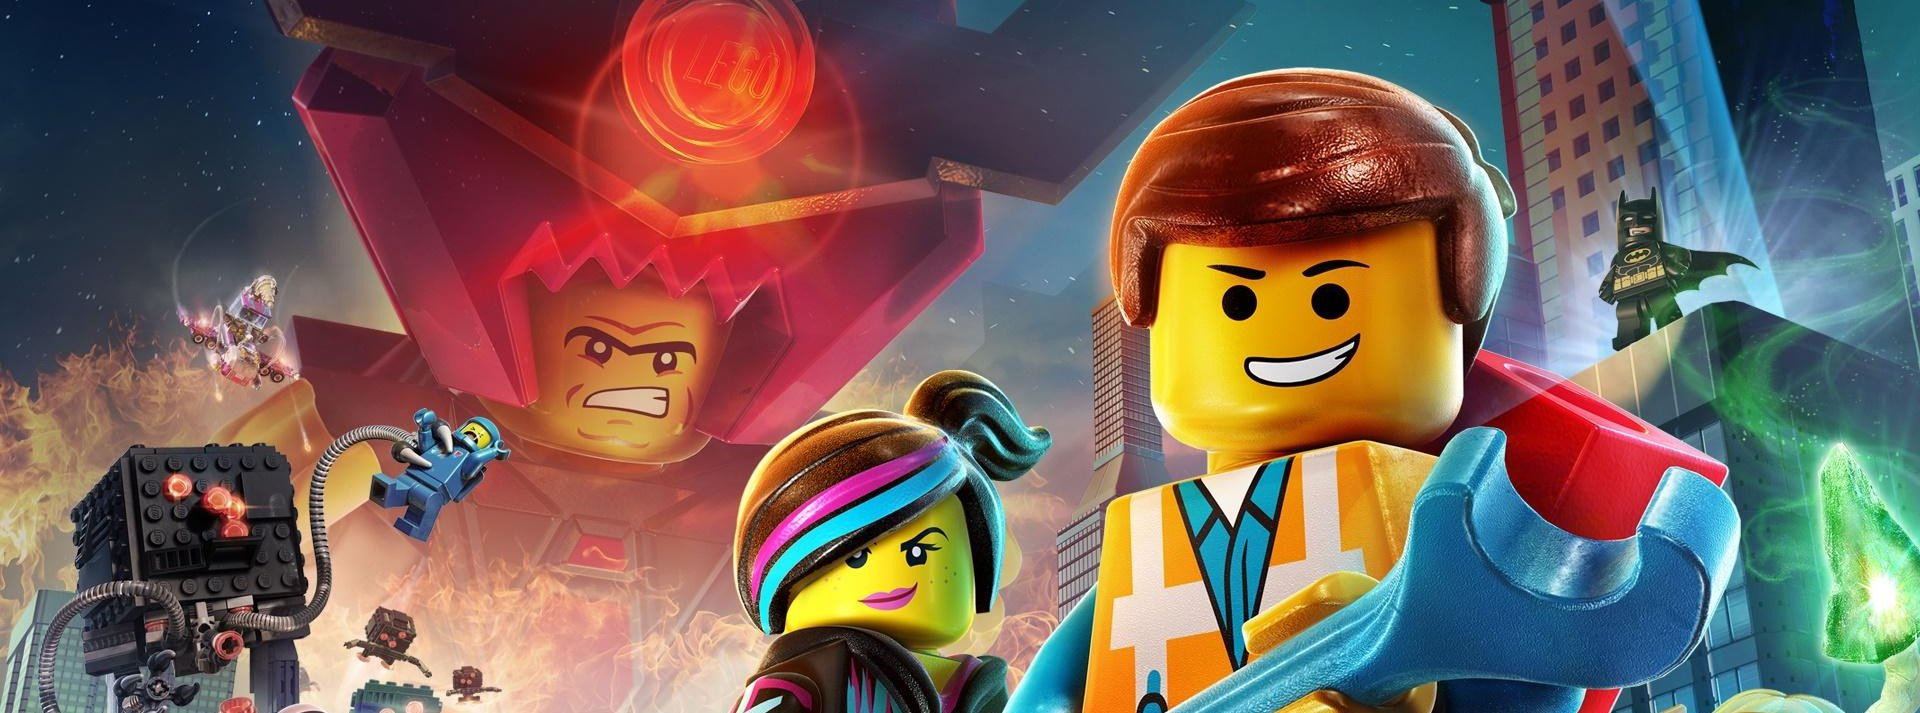 Film: The Lego Movie feature image